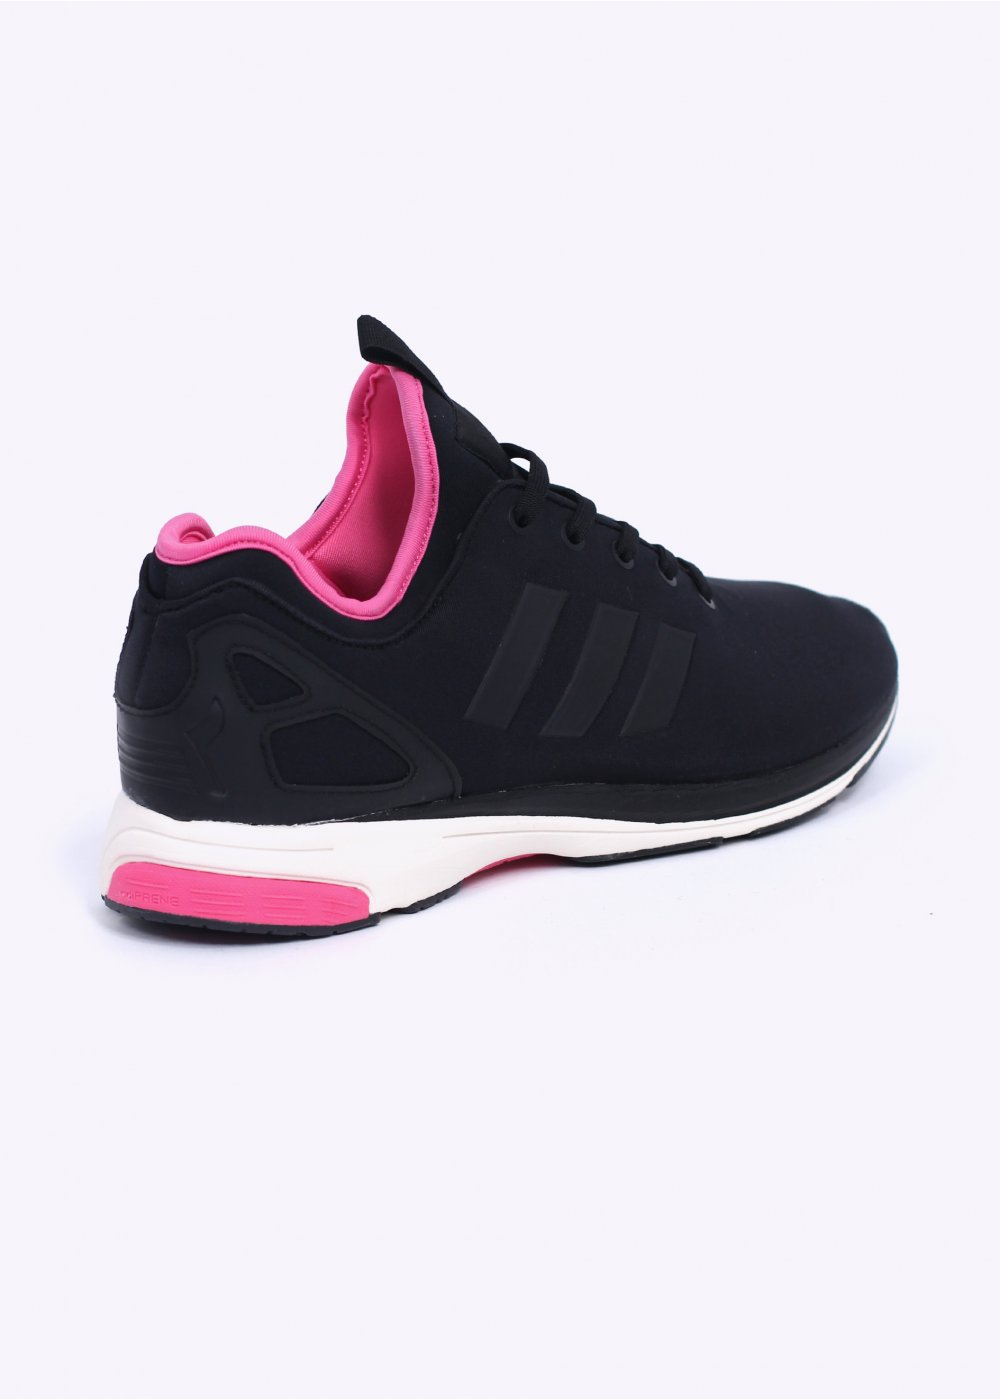 adidas black and pink trainers